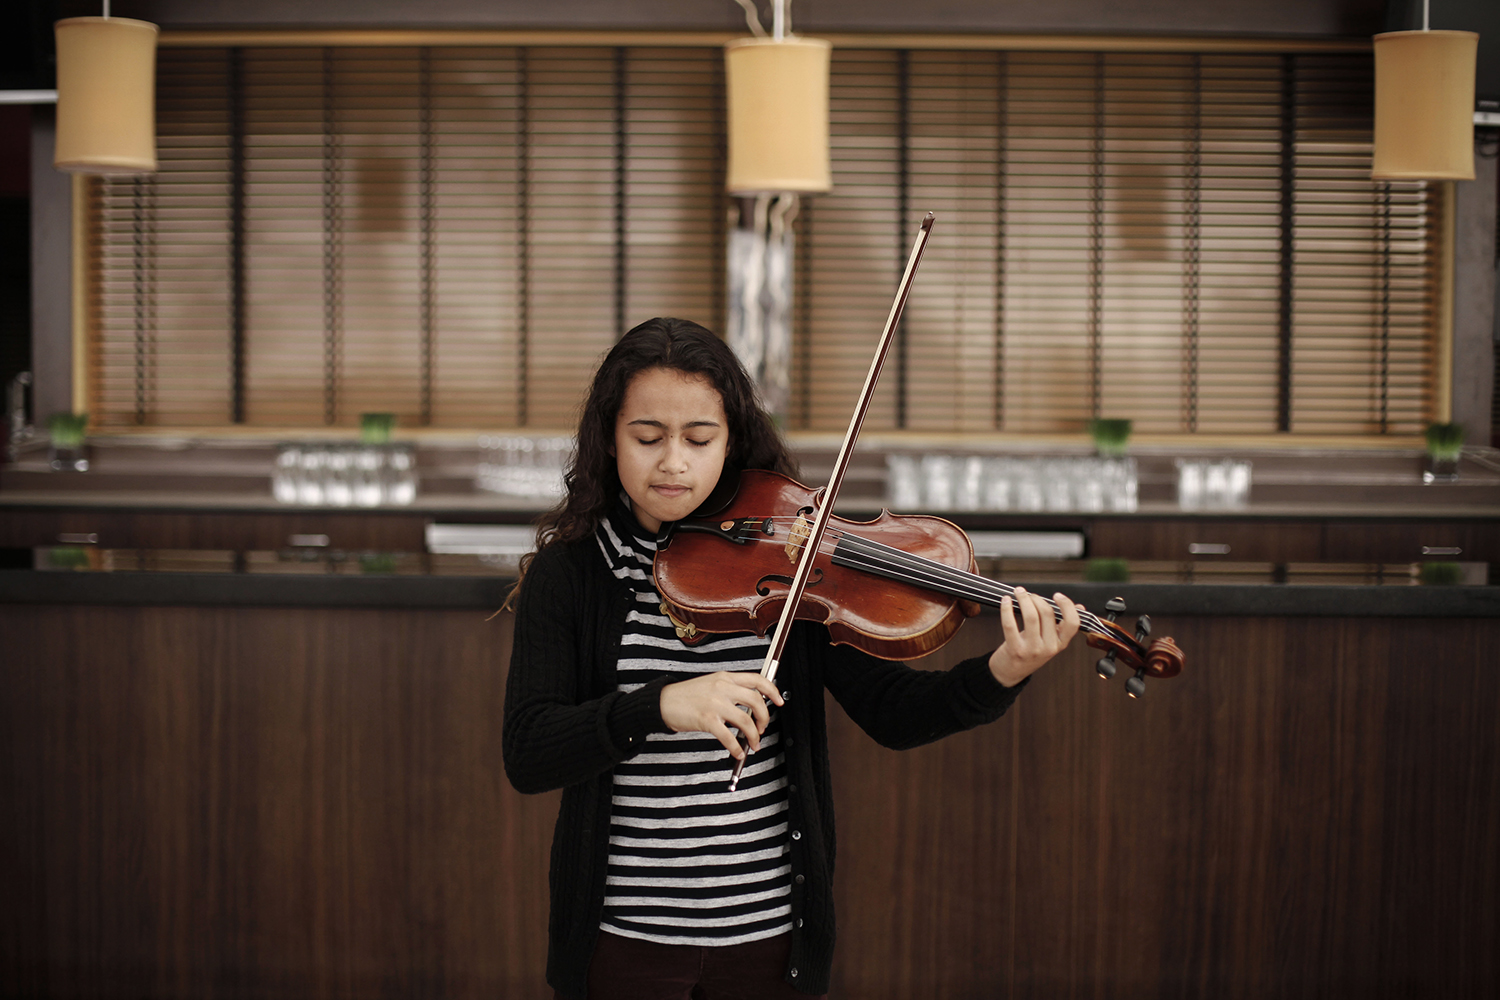 Mya Greene, 17, from Los Angeles, CA plays her viola on Wednesday, Feb. 19, 2014 in the GM Renaissance Center in Detroit. Tim Galloway for Al Jazeera America.